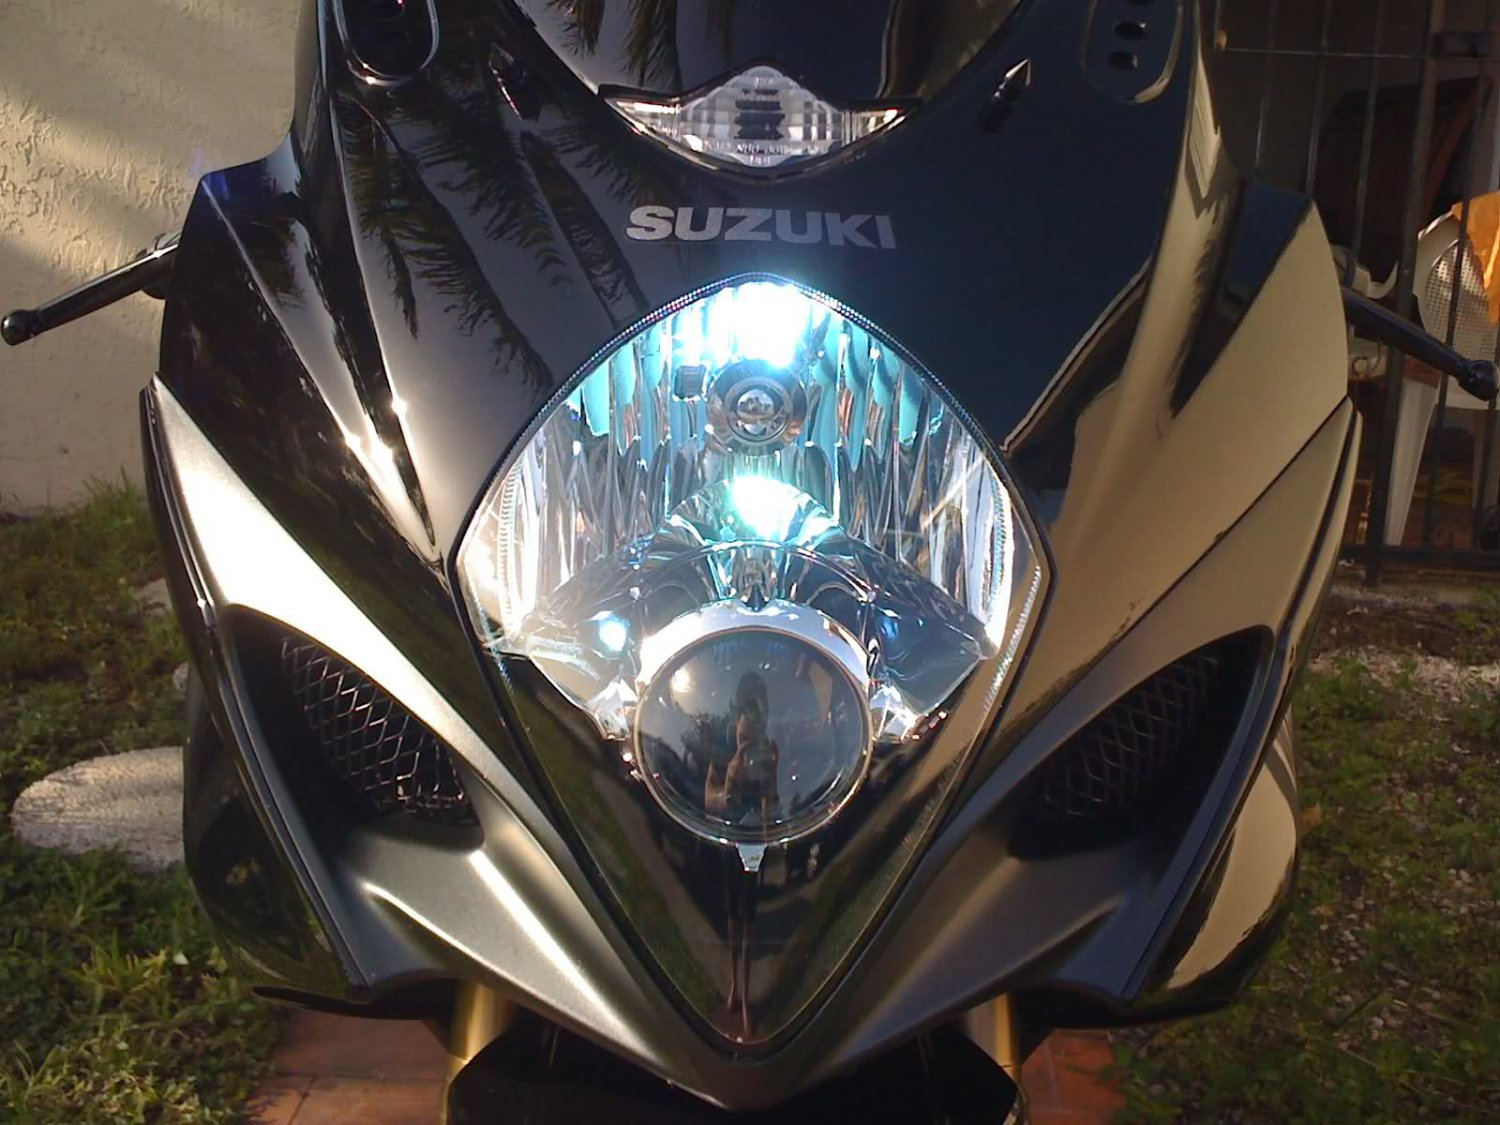 2008 2009 2010 Suzuki GSX-R750 GSXR 750 Bright White High Low Light Bulbs for Headlamp Headlight